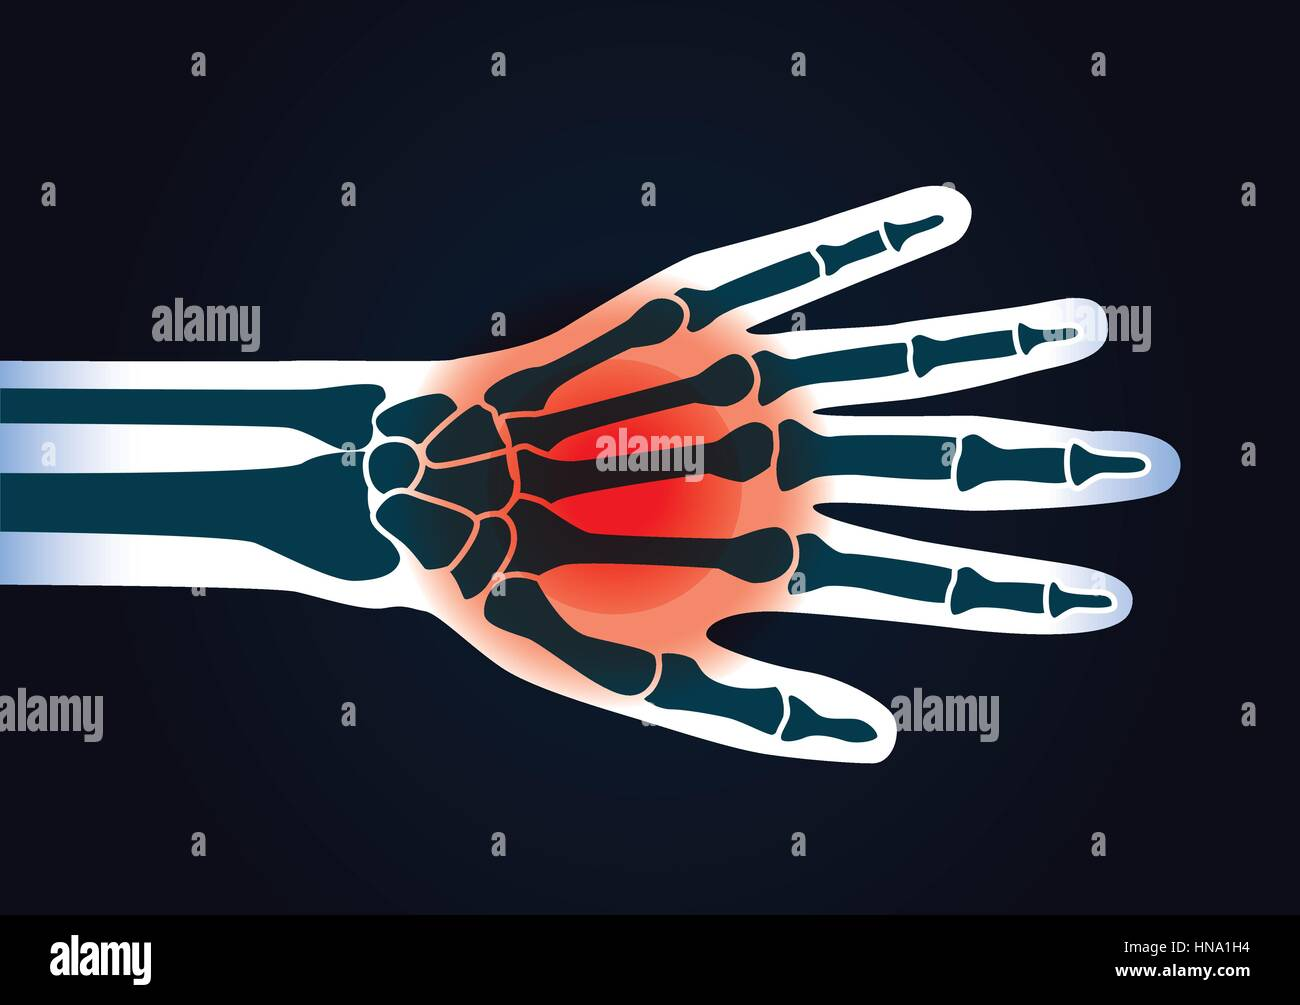 Human hand bone have a red signal. This illustration about foot pain. - Stock Vector